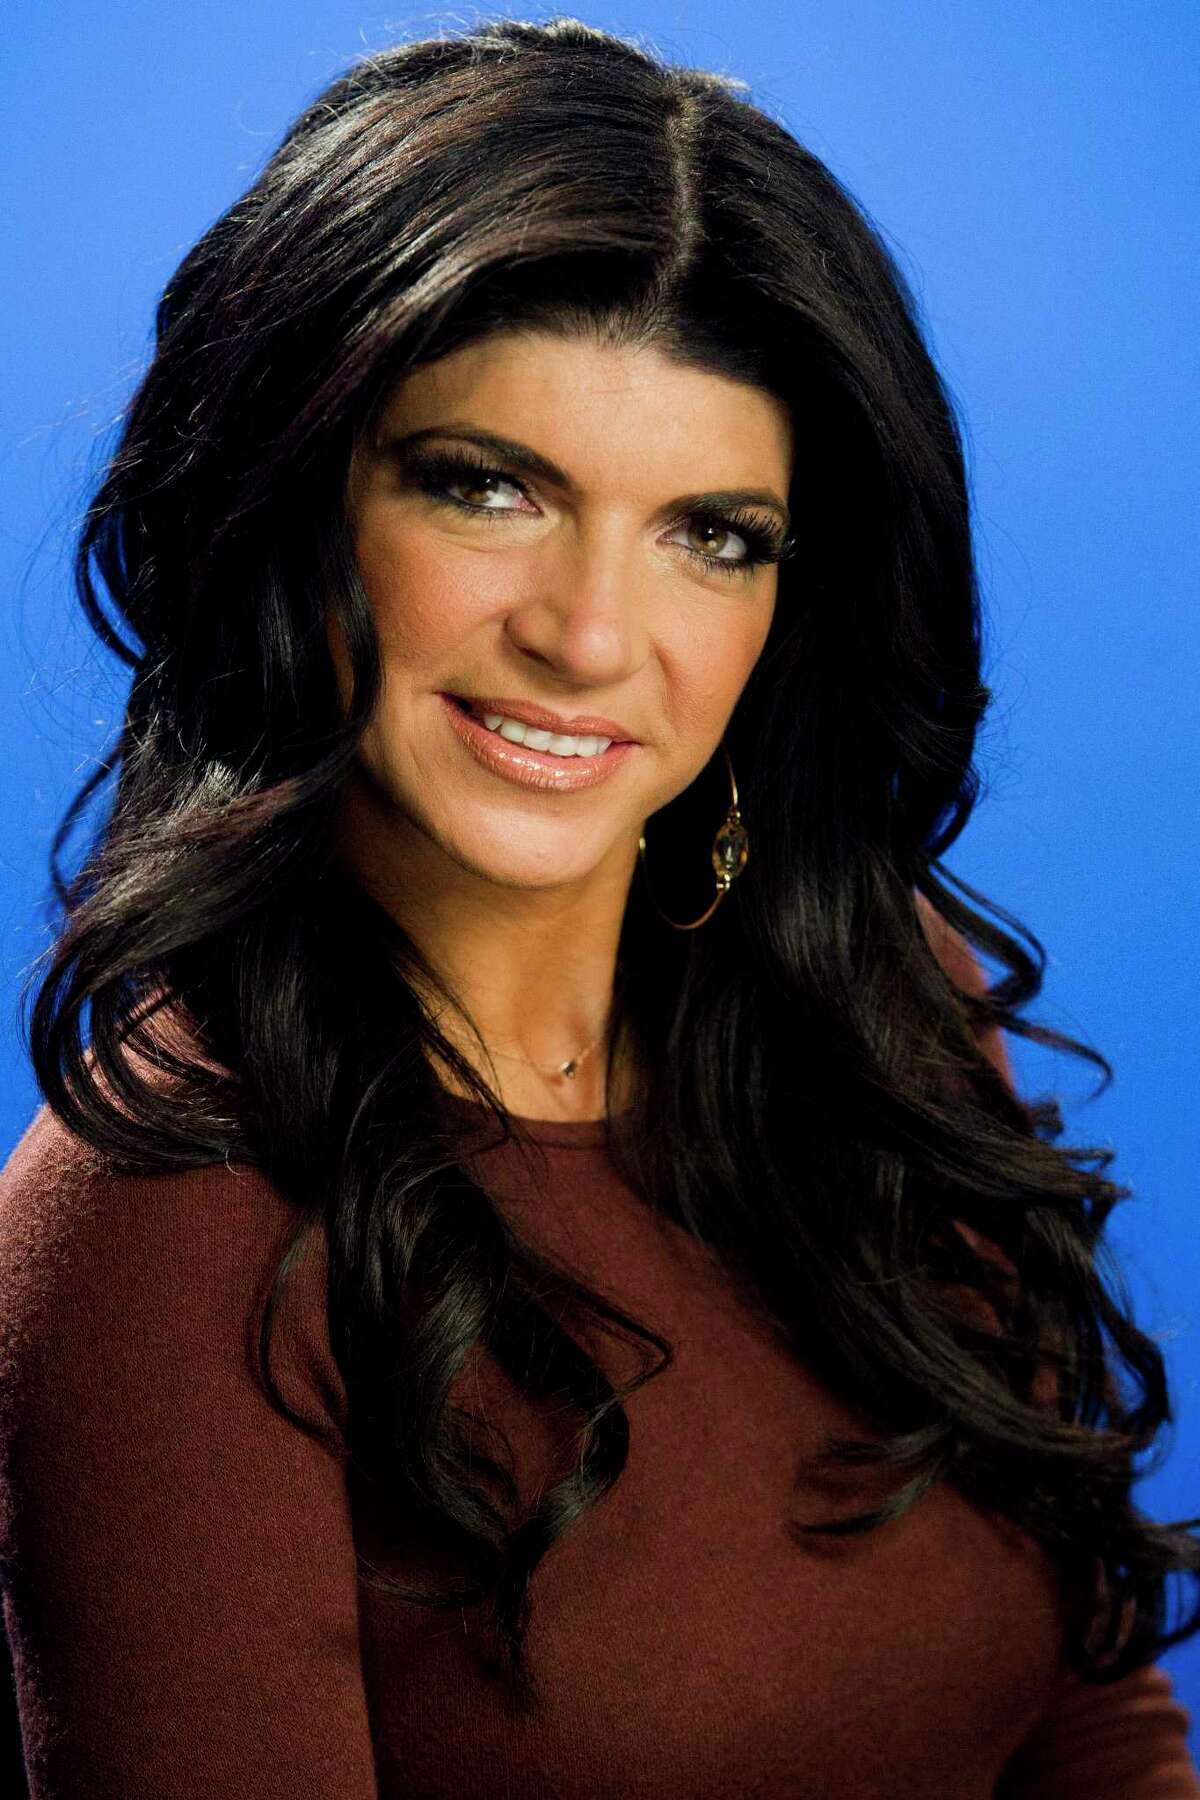 This Jan. 4, 2012 photo shows Teresa Giudice posing for a portrait in New York.